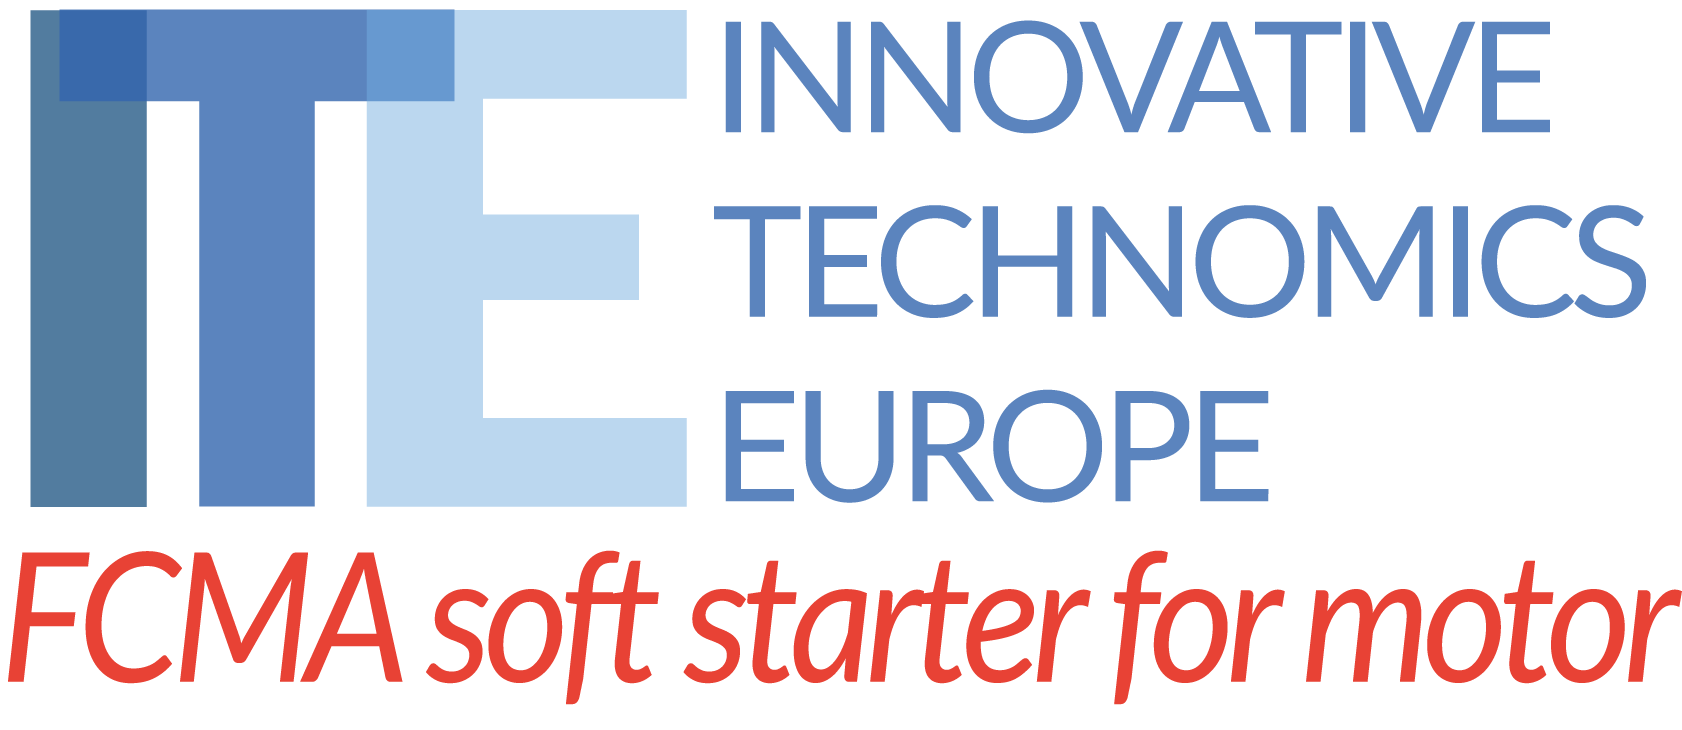 Innovative Technomics Europe website